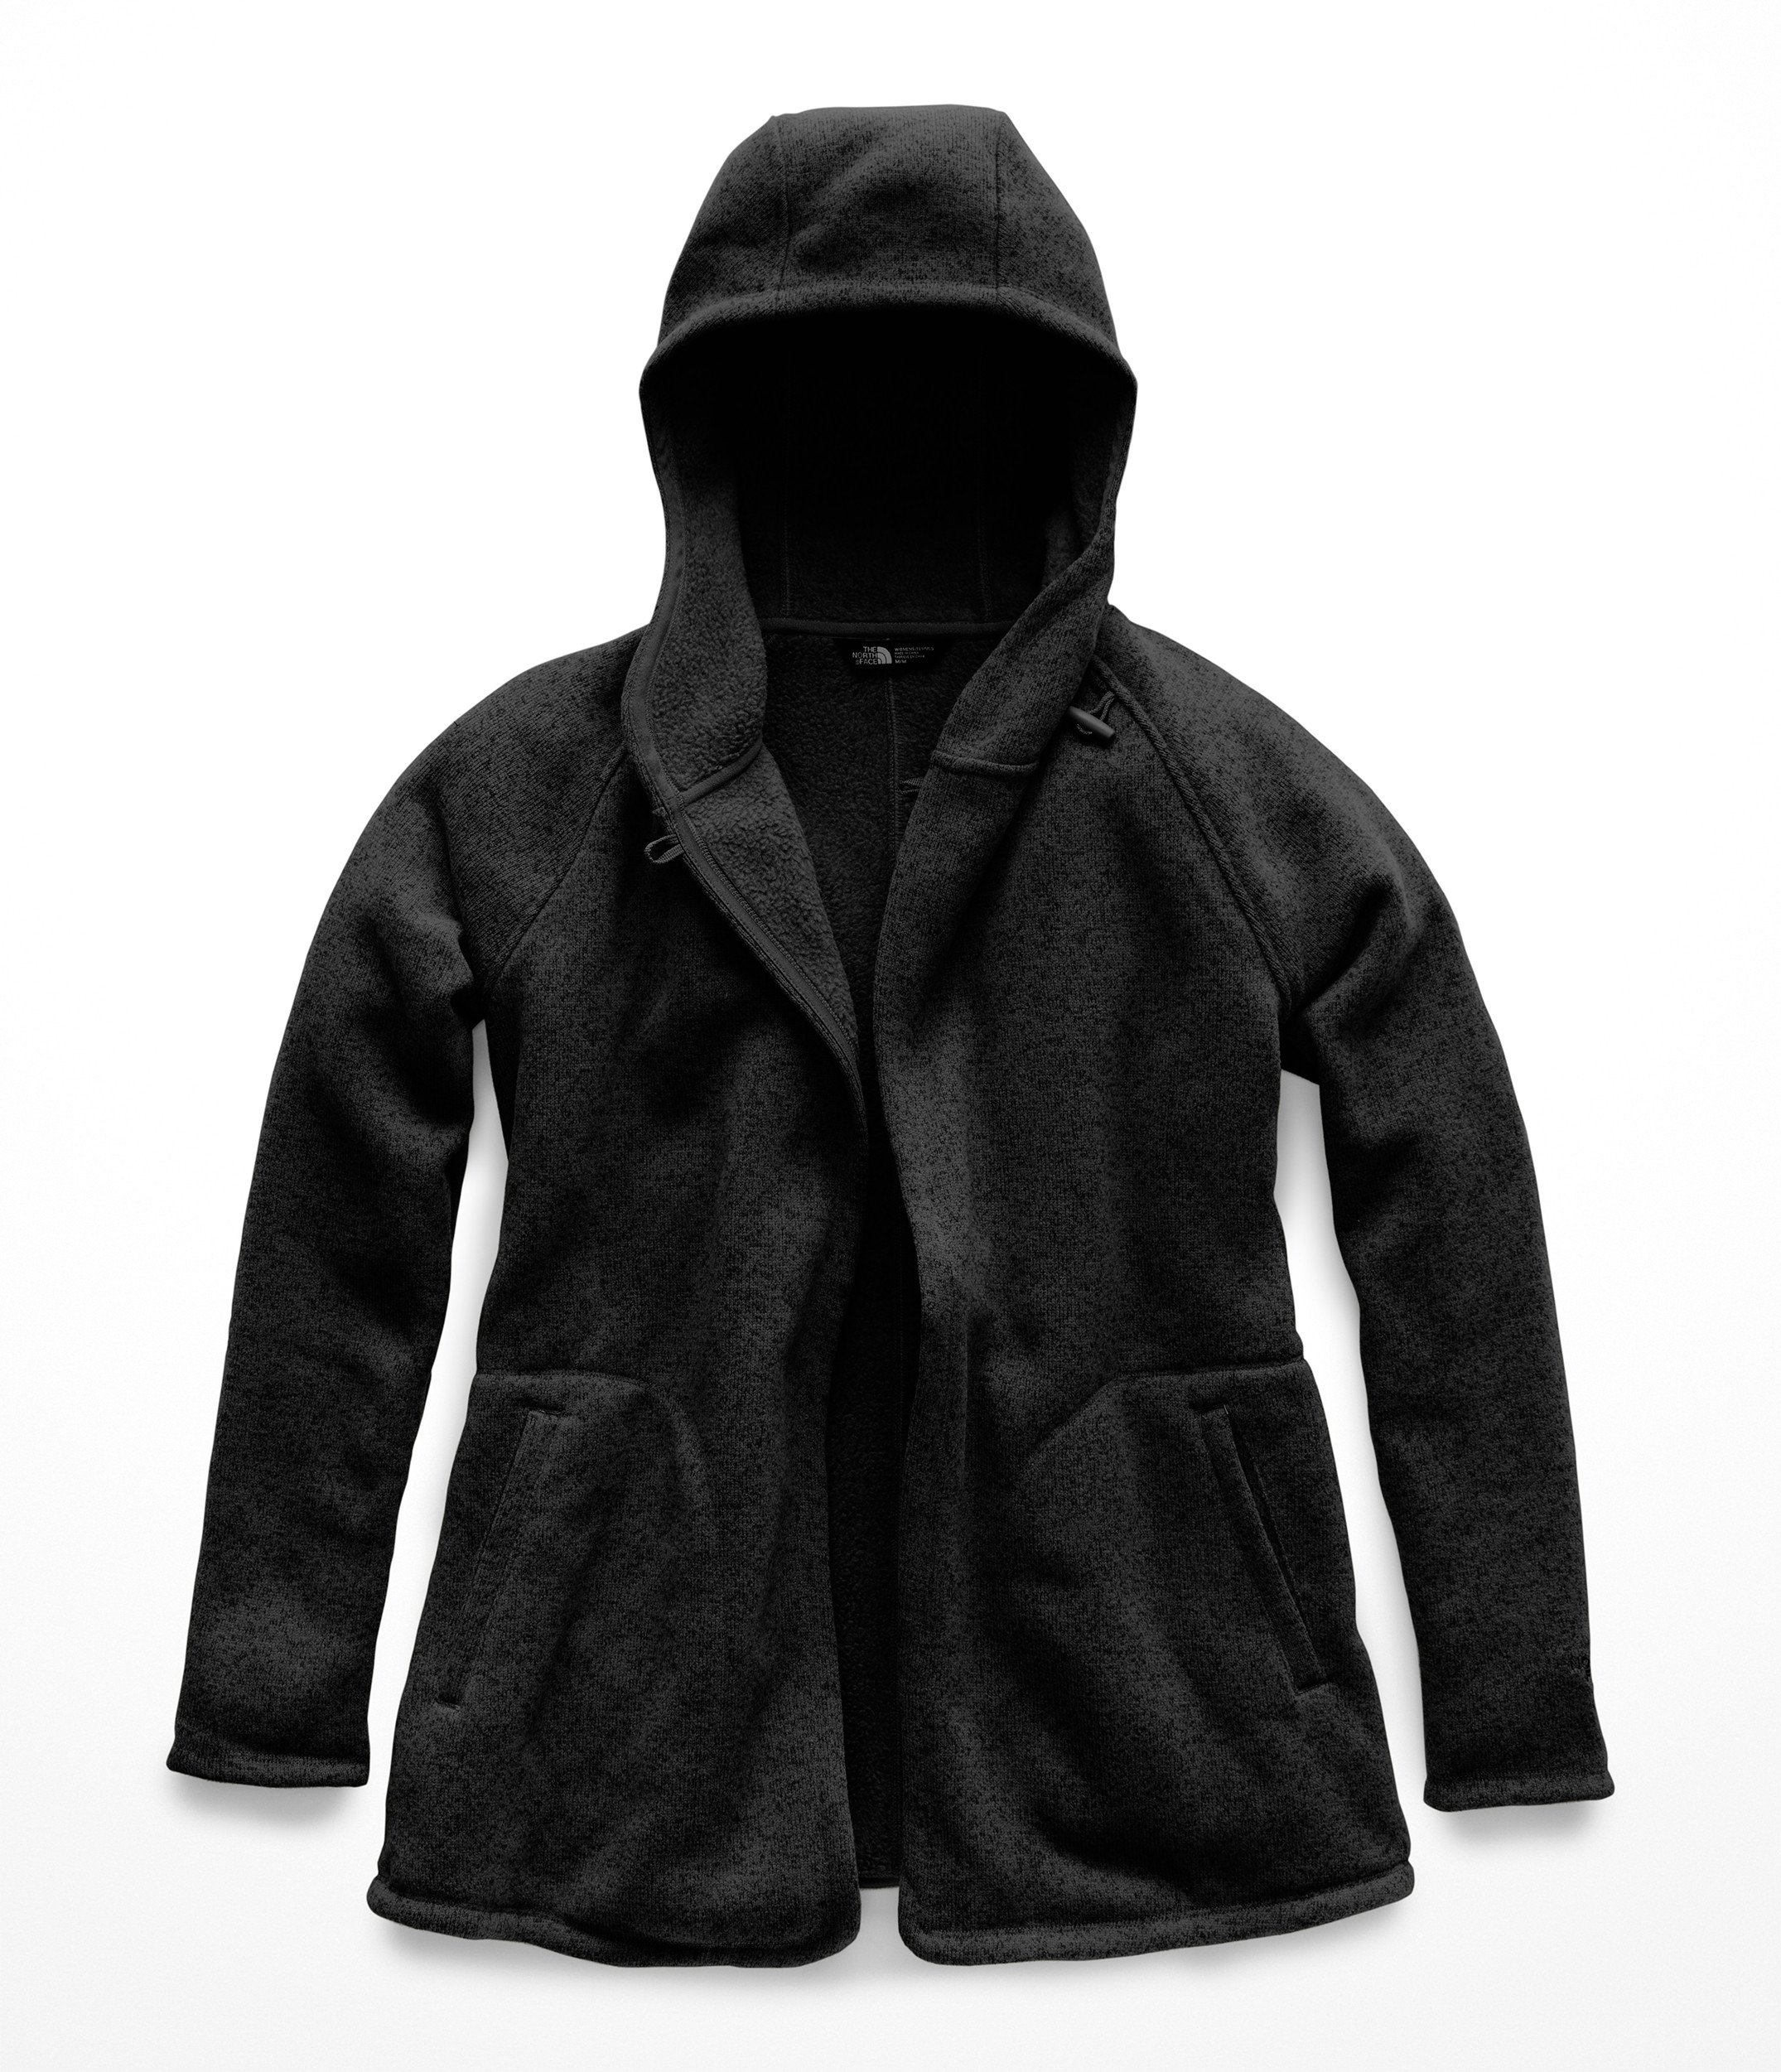 The North Face Women's Crescent Wrap - TNF Black Heather - M by The North Face